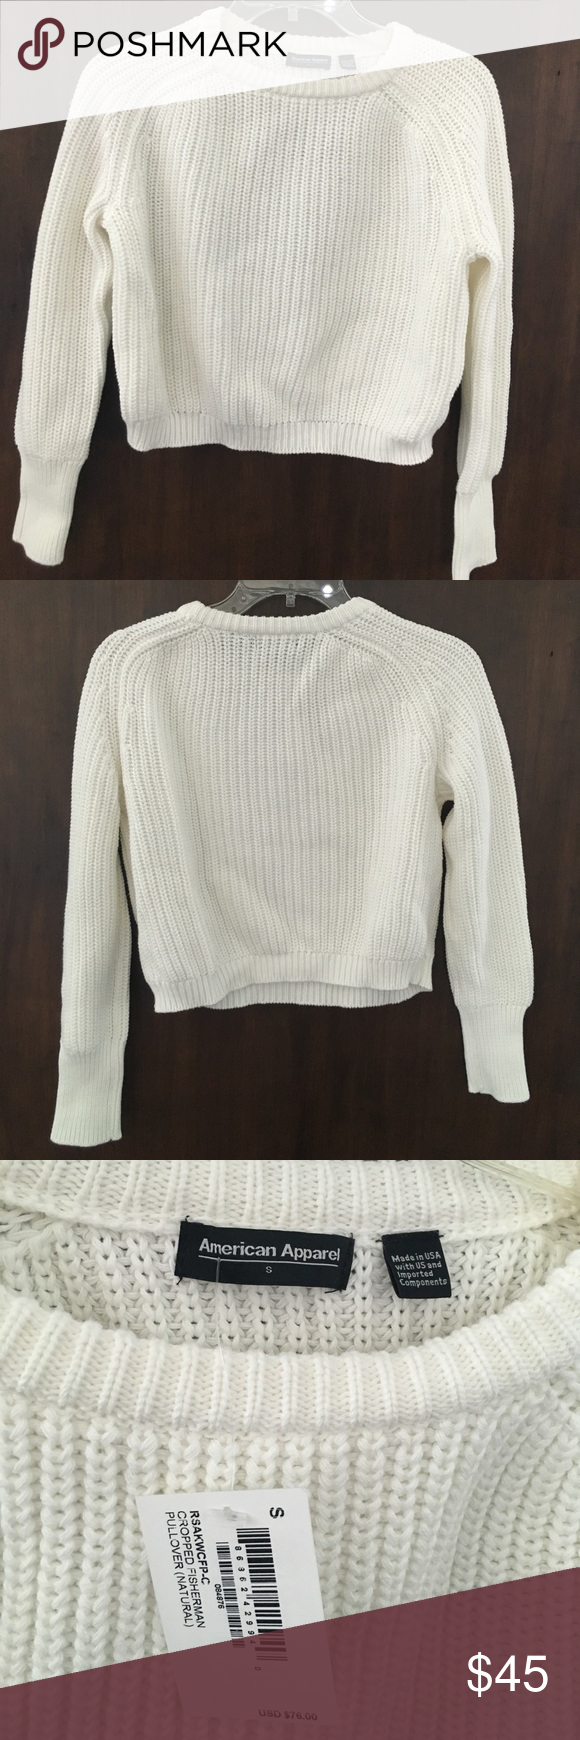 American Apparel White Crop Sweater NWT Off-White knit long-sleeve ...